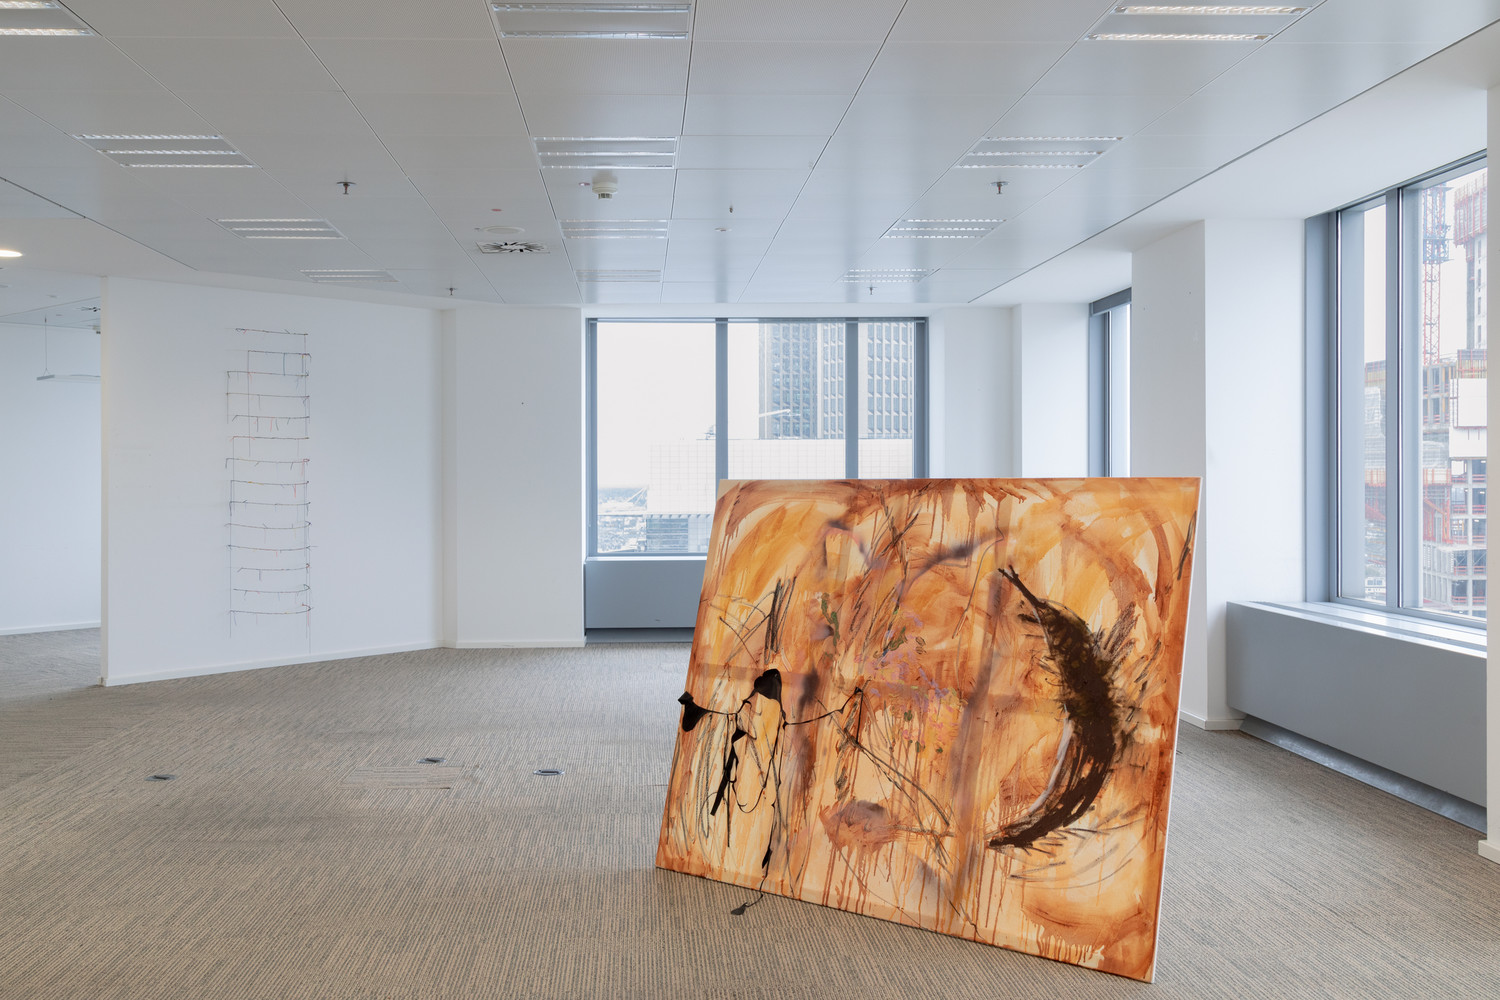 Orbit, Installation View. Work in the image: Cemil Tsegay.